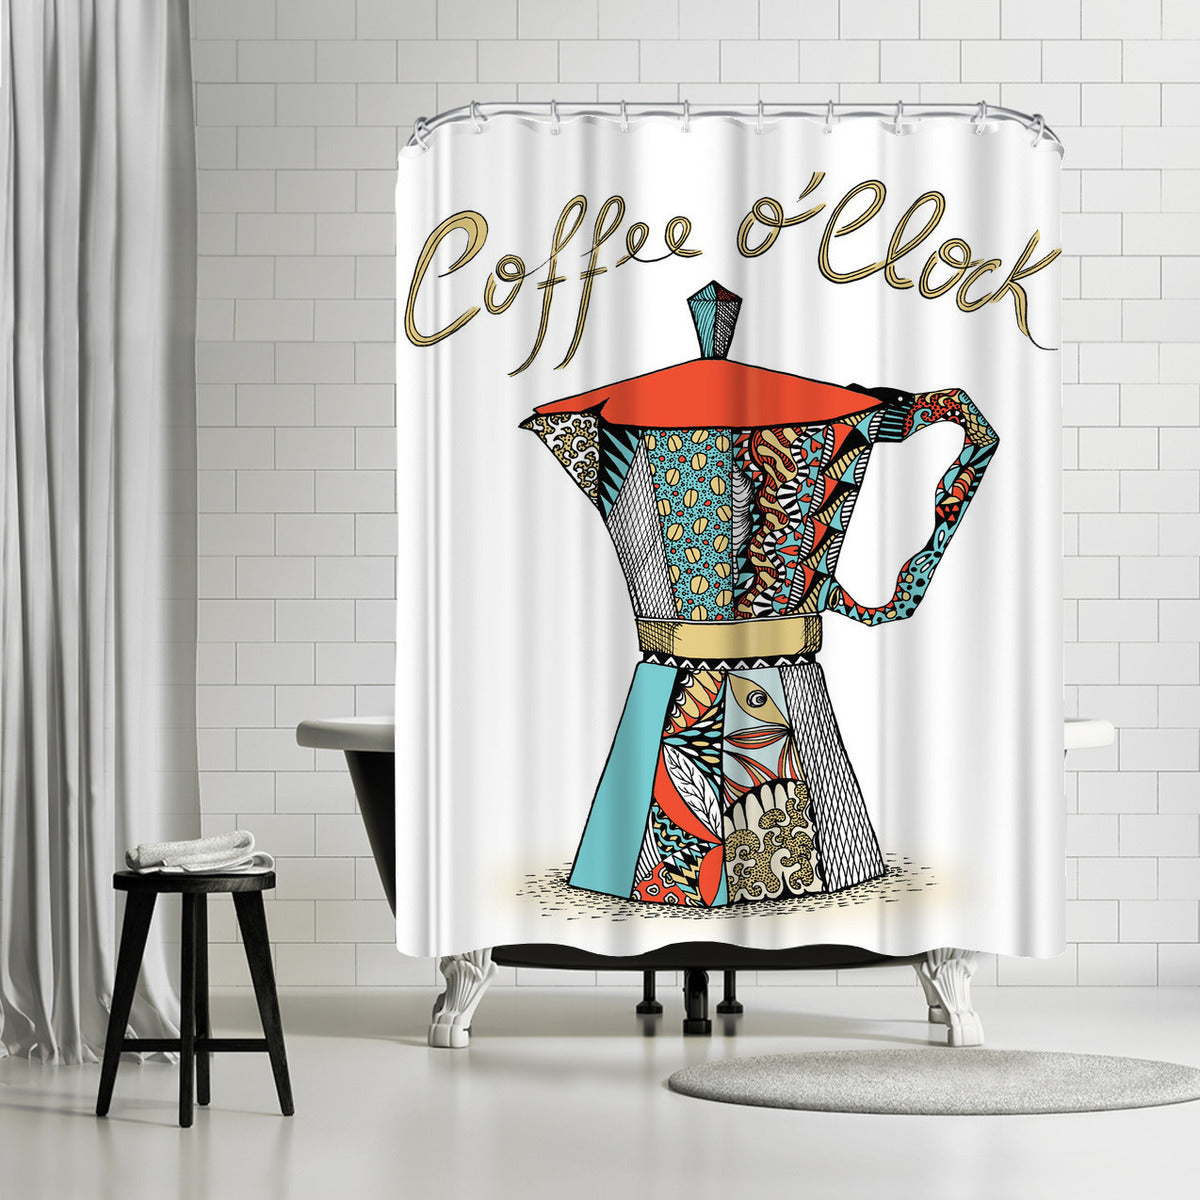 Coffee Oclock by Patricia Pino Shower Curtain - Shower Curtain - Americanflat